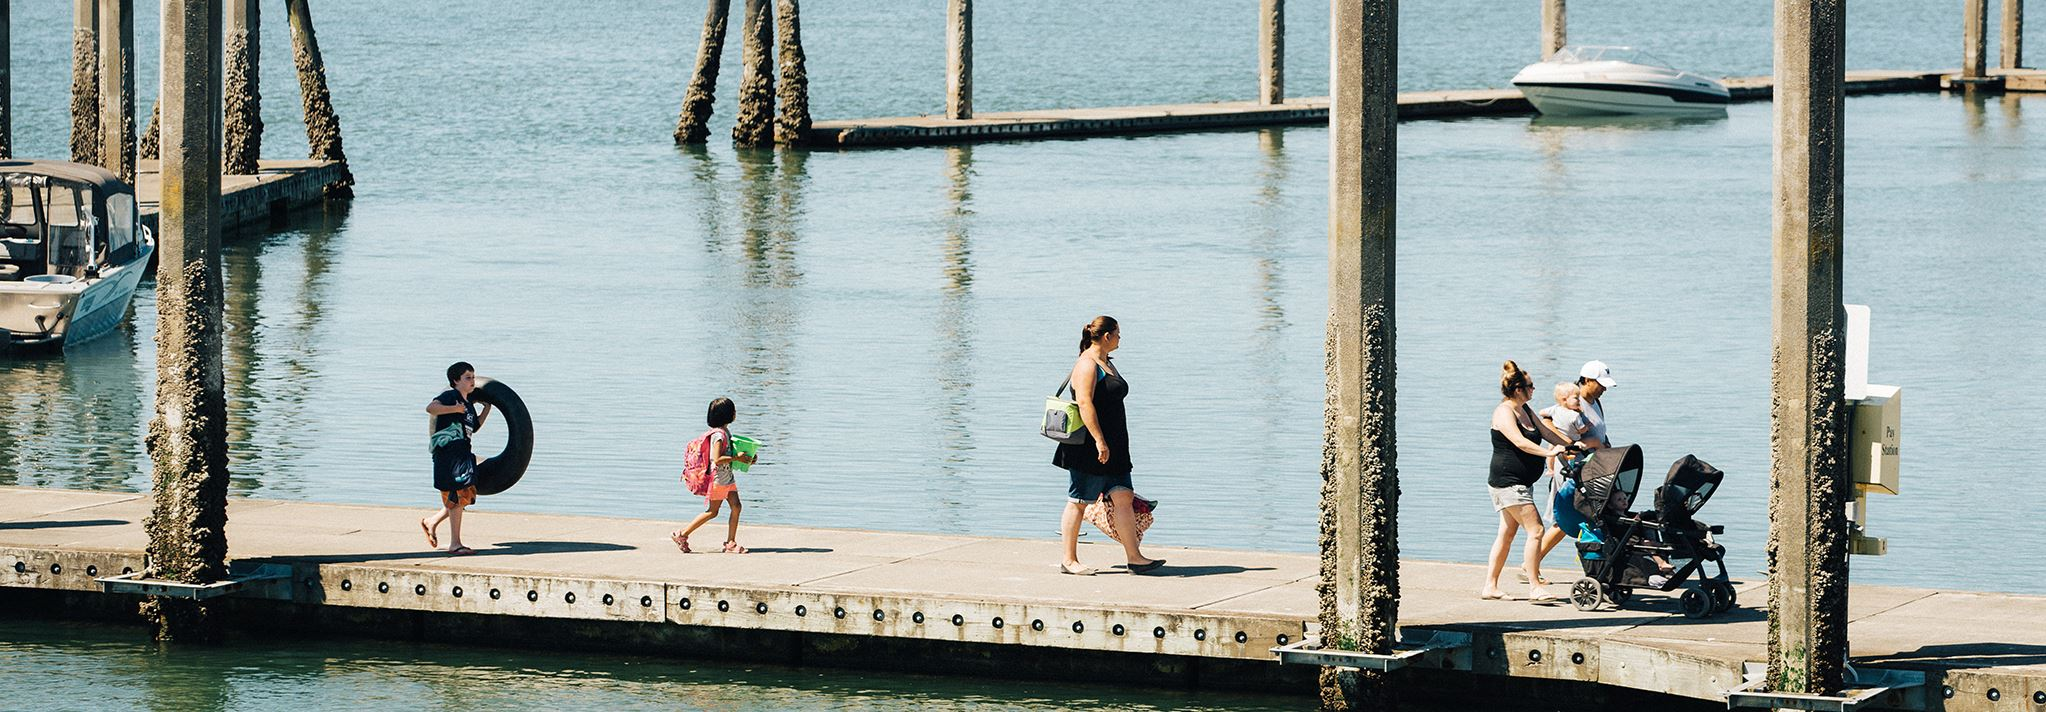 A group of parents and young children walk along the pier carrying their water toys.